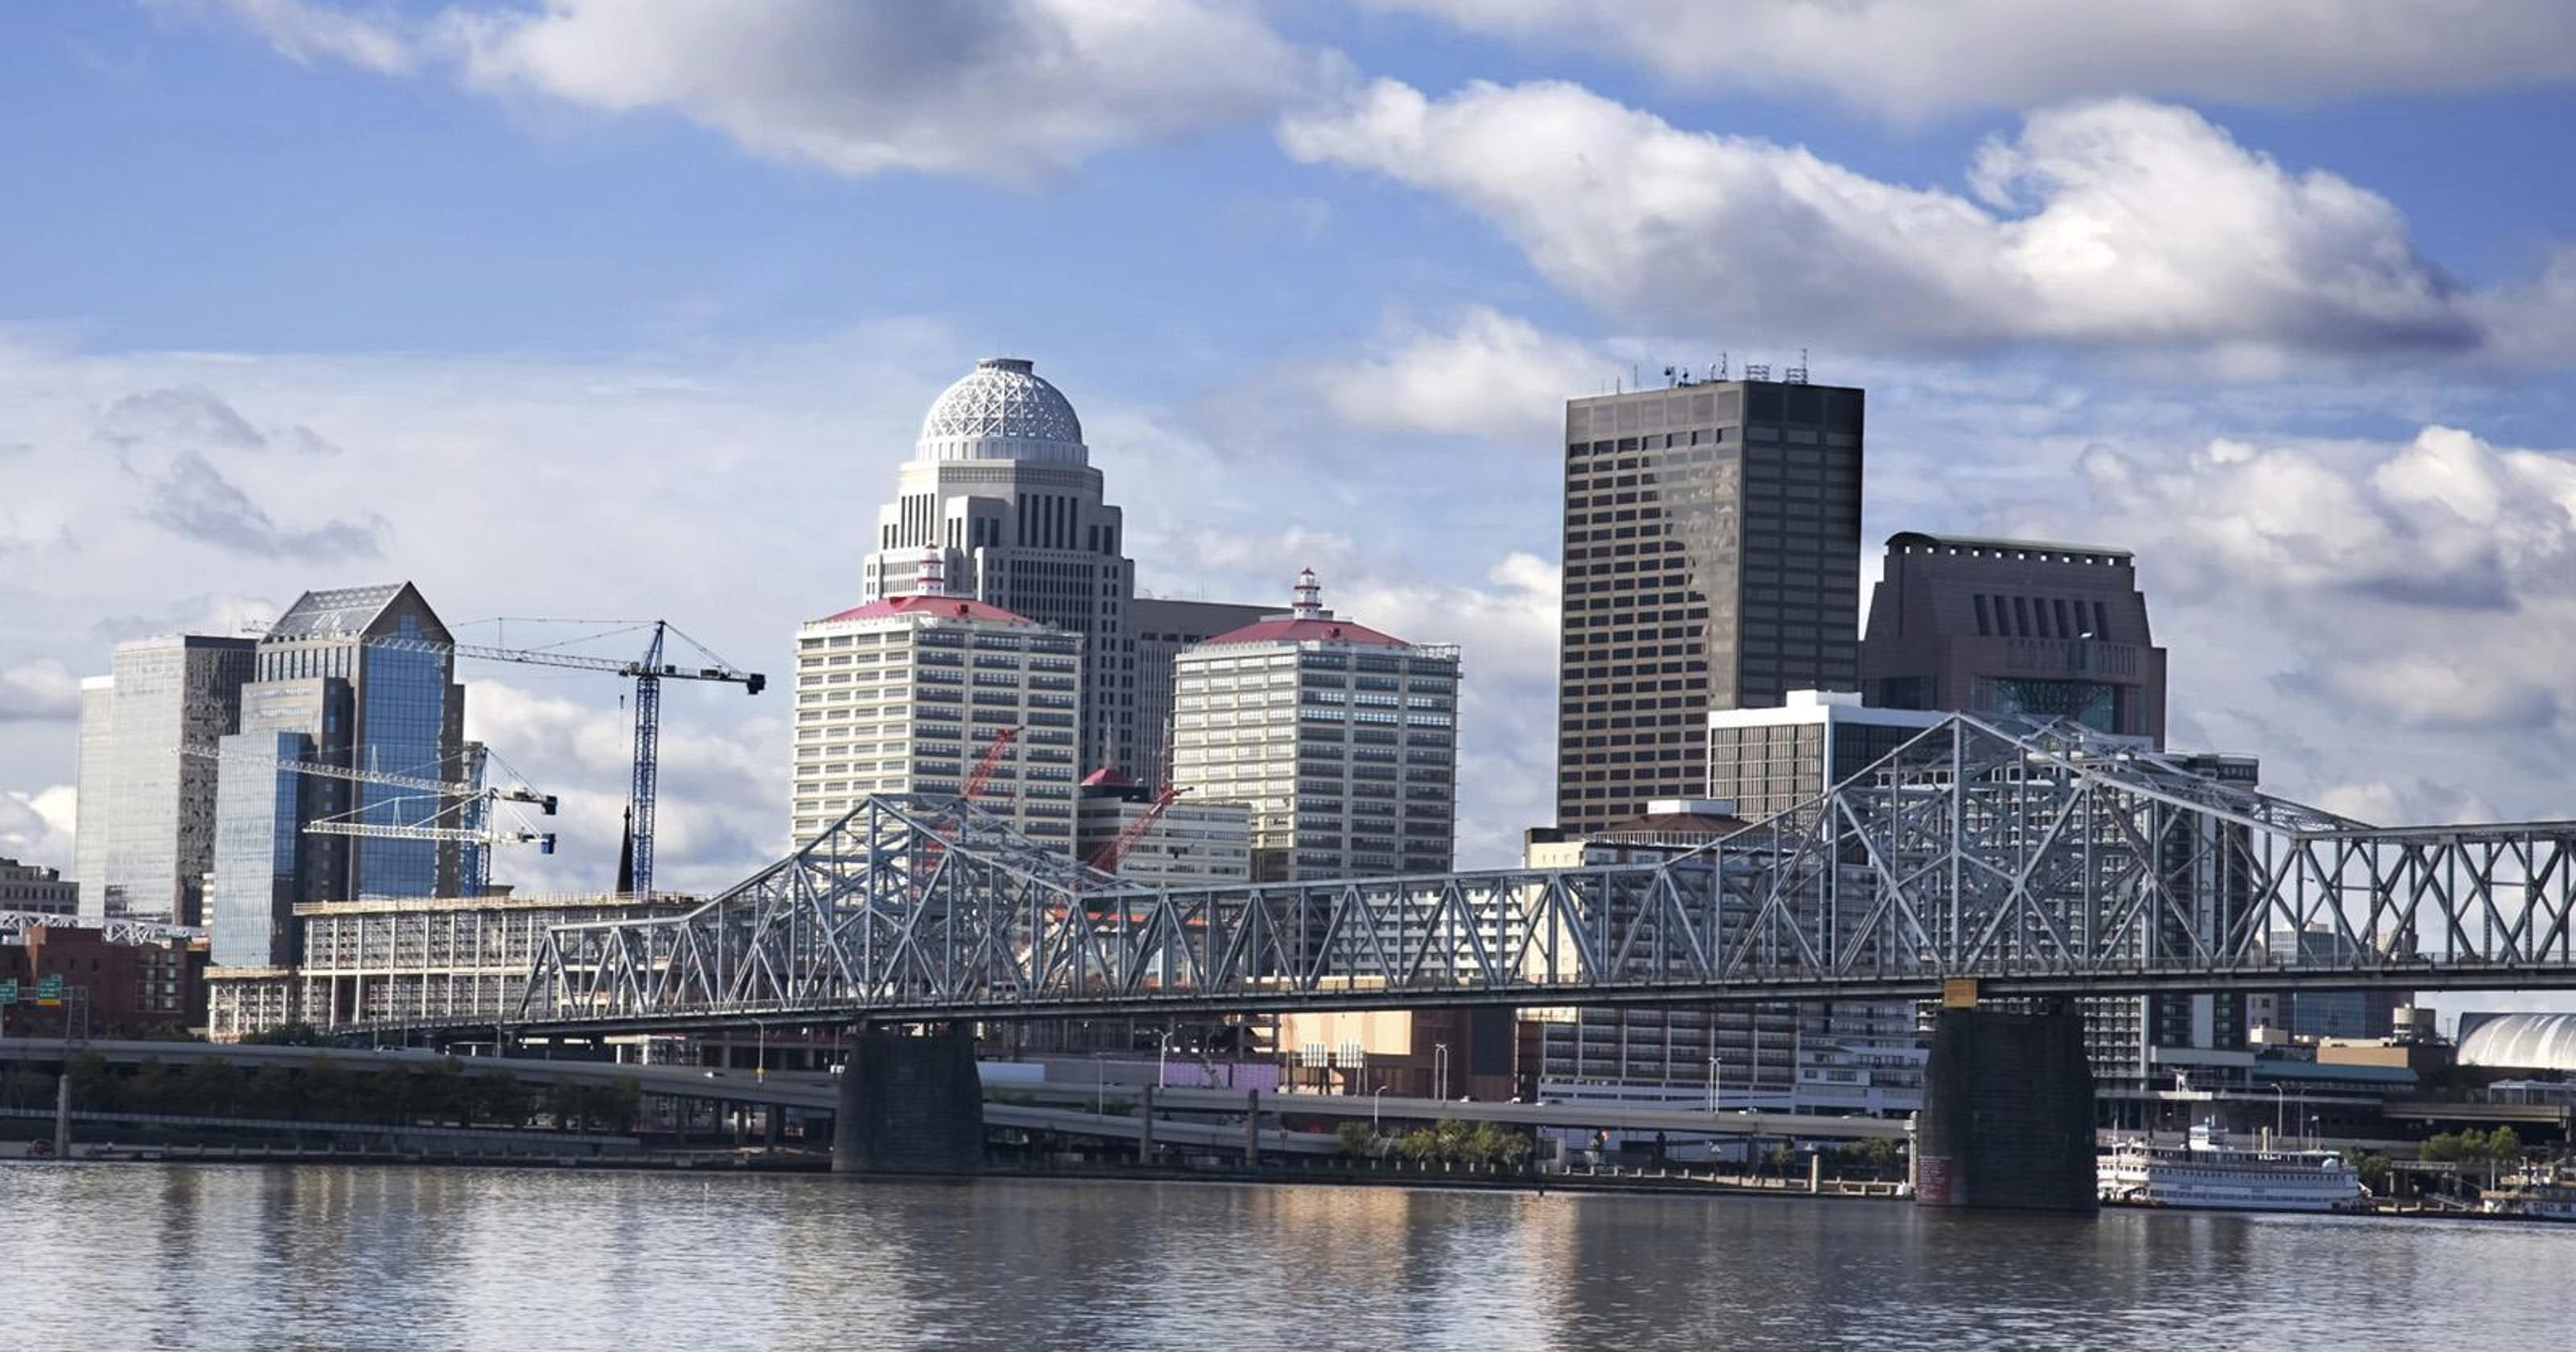 What did Louisville lack in Amazon competition? A lot, it